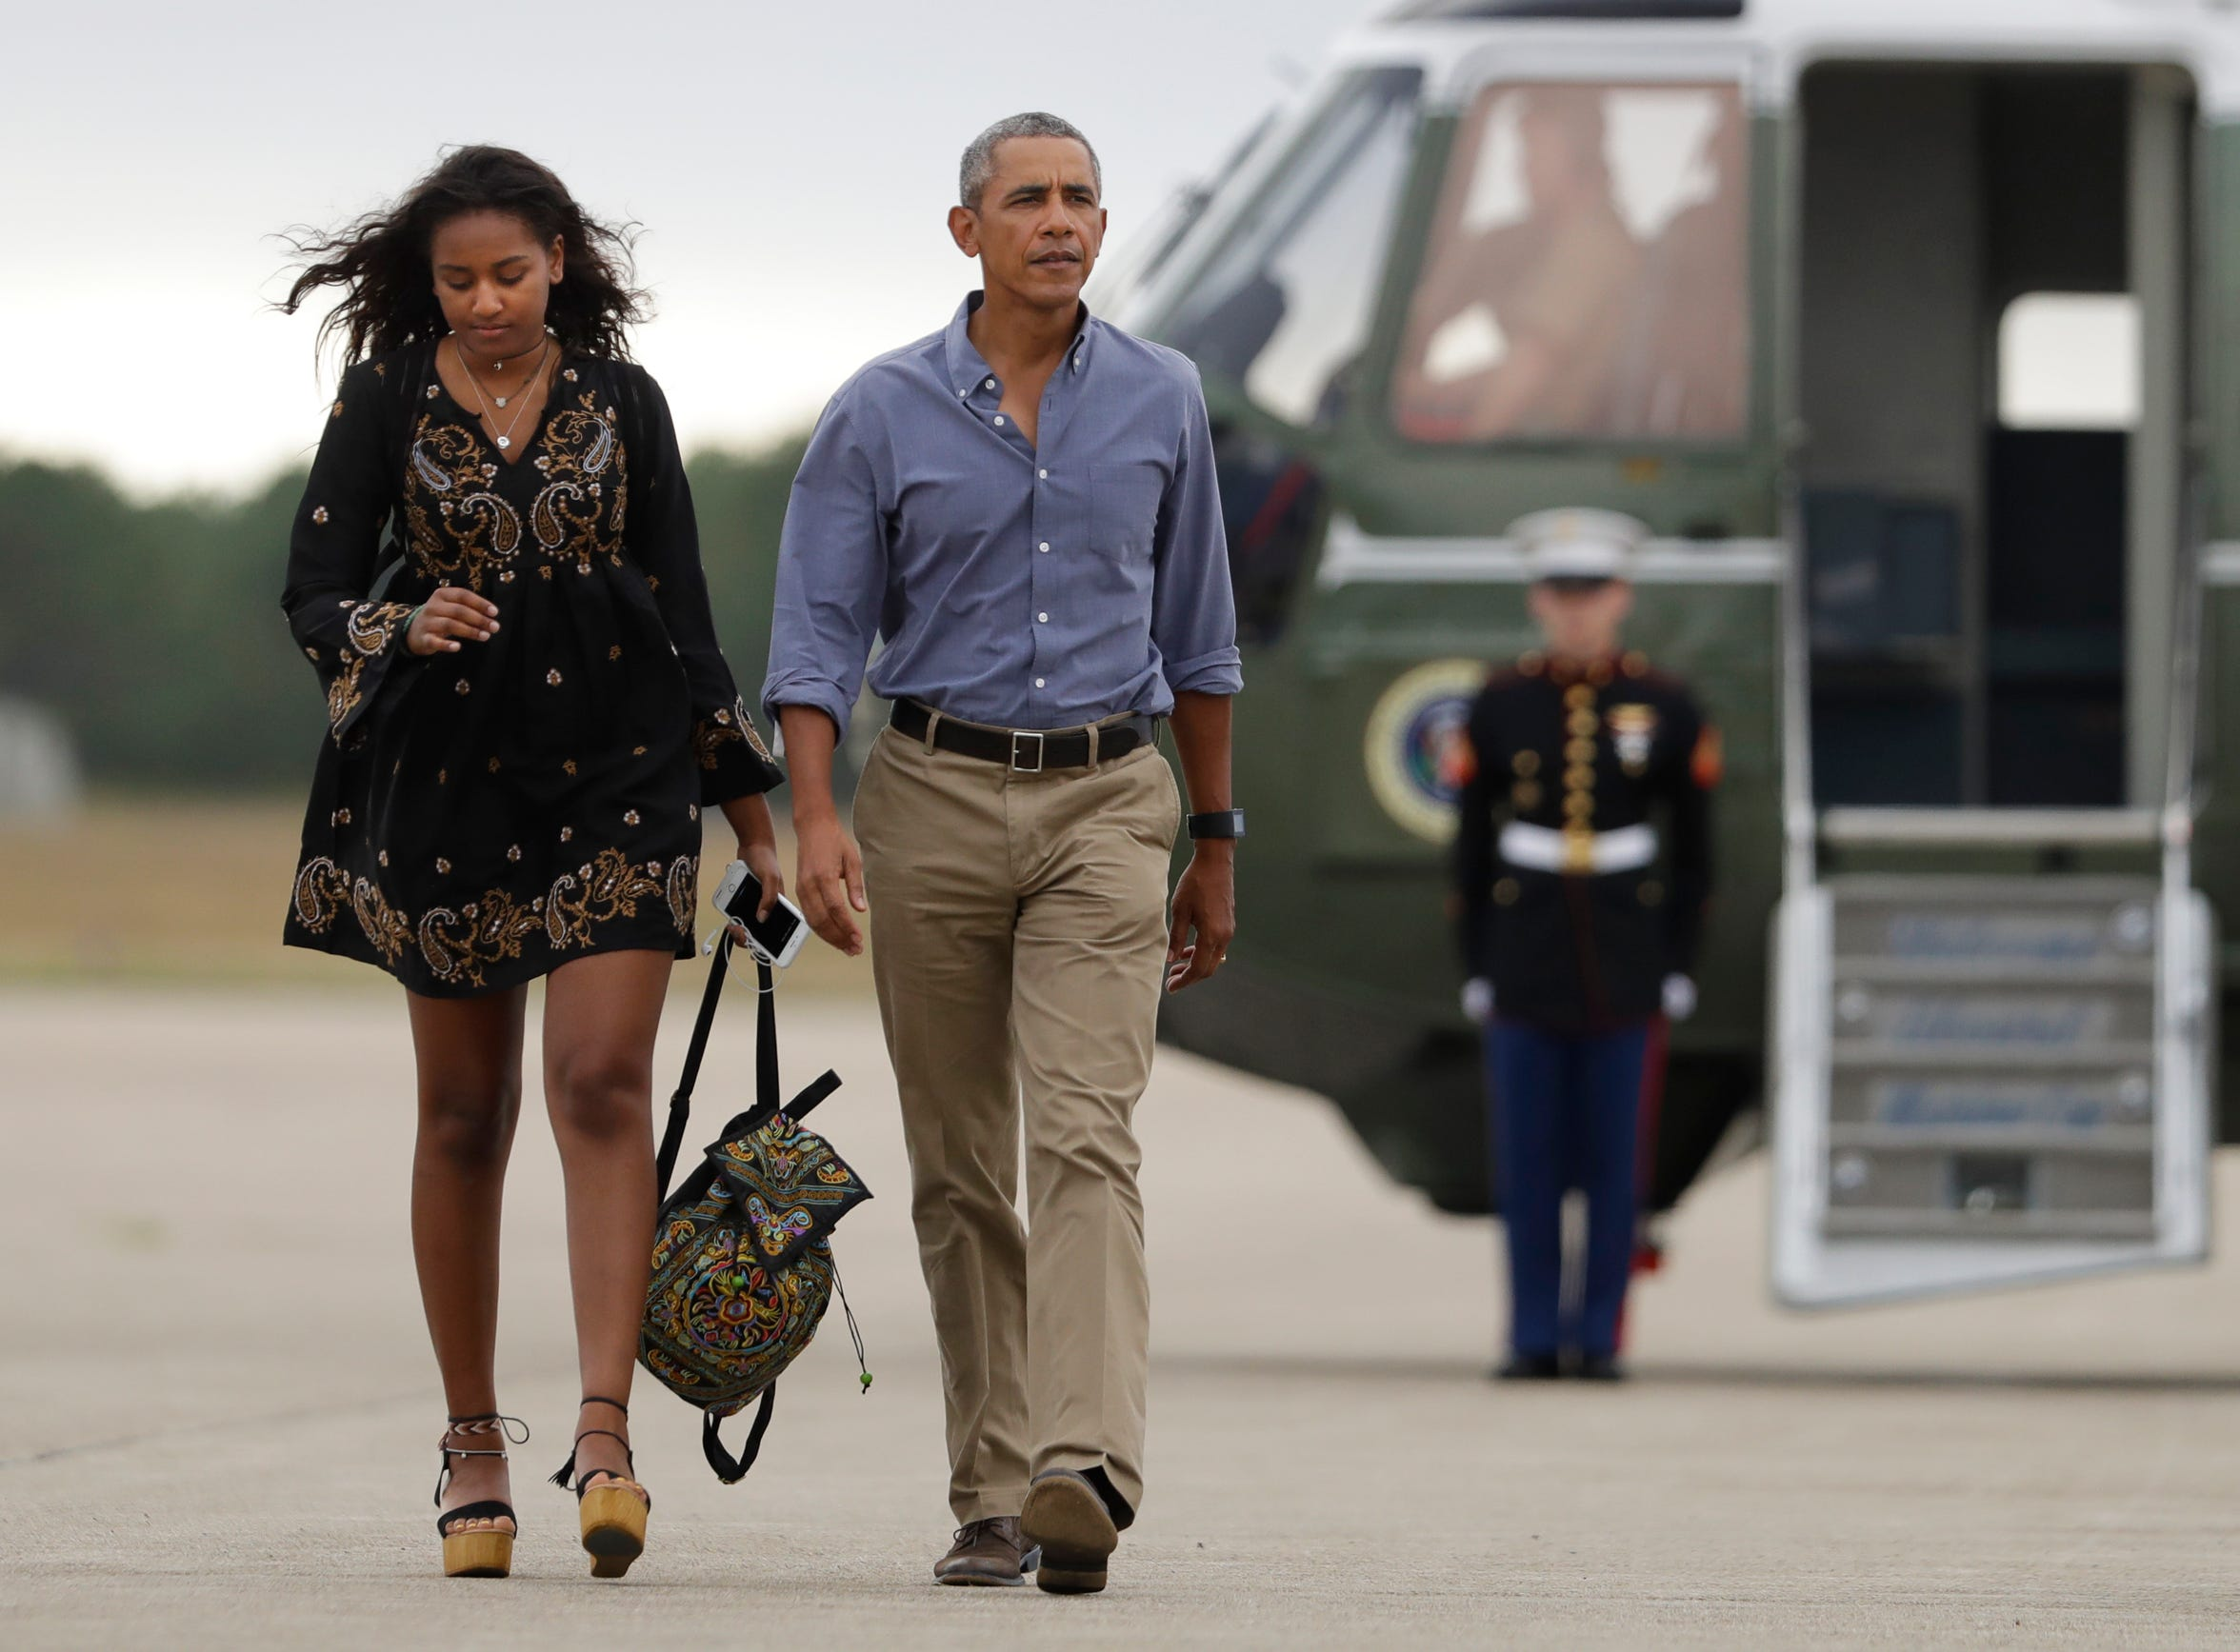 President Barack Obama and daughter Sasha Obama, walk on the tarmac to board Air Force One at Air Station Cape Cod in Mass., Sunday, Aug. 21, 2016. Sasha enrolled in the University of Michigan last fall.